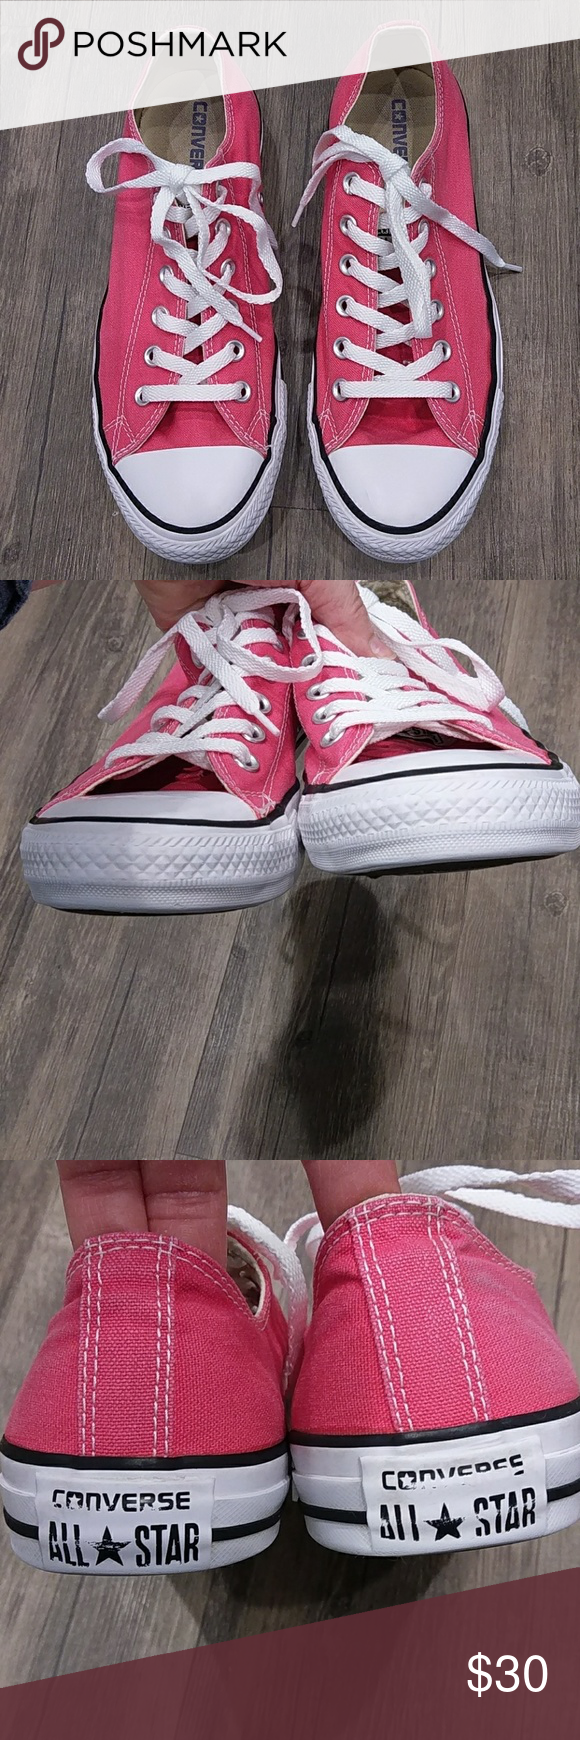 Converse All Star Bright Pink Low Top Sneakers 10M Classic style lace up.Has a small mark on the heel only you know it is there.pet and smoke free home Converse Shoes Sneakers